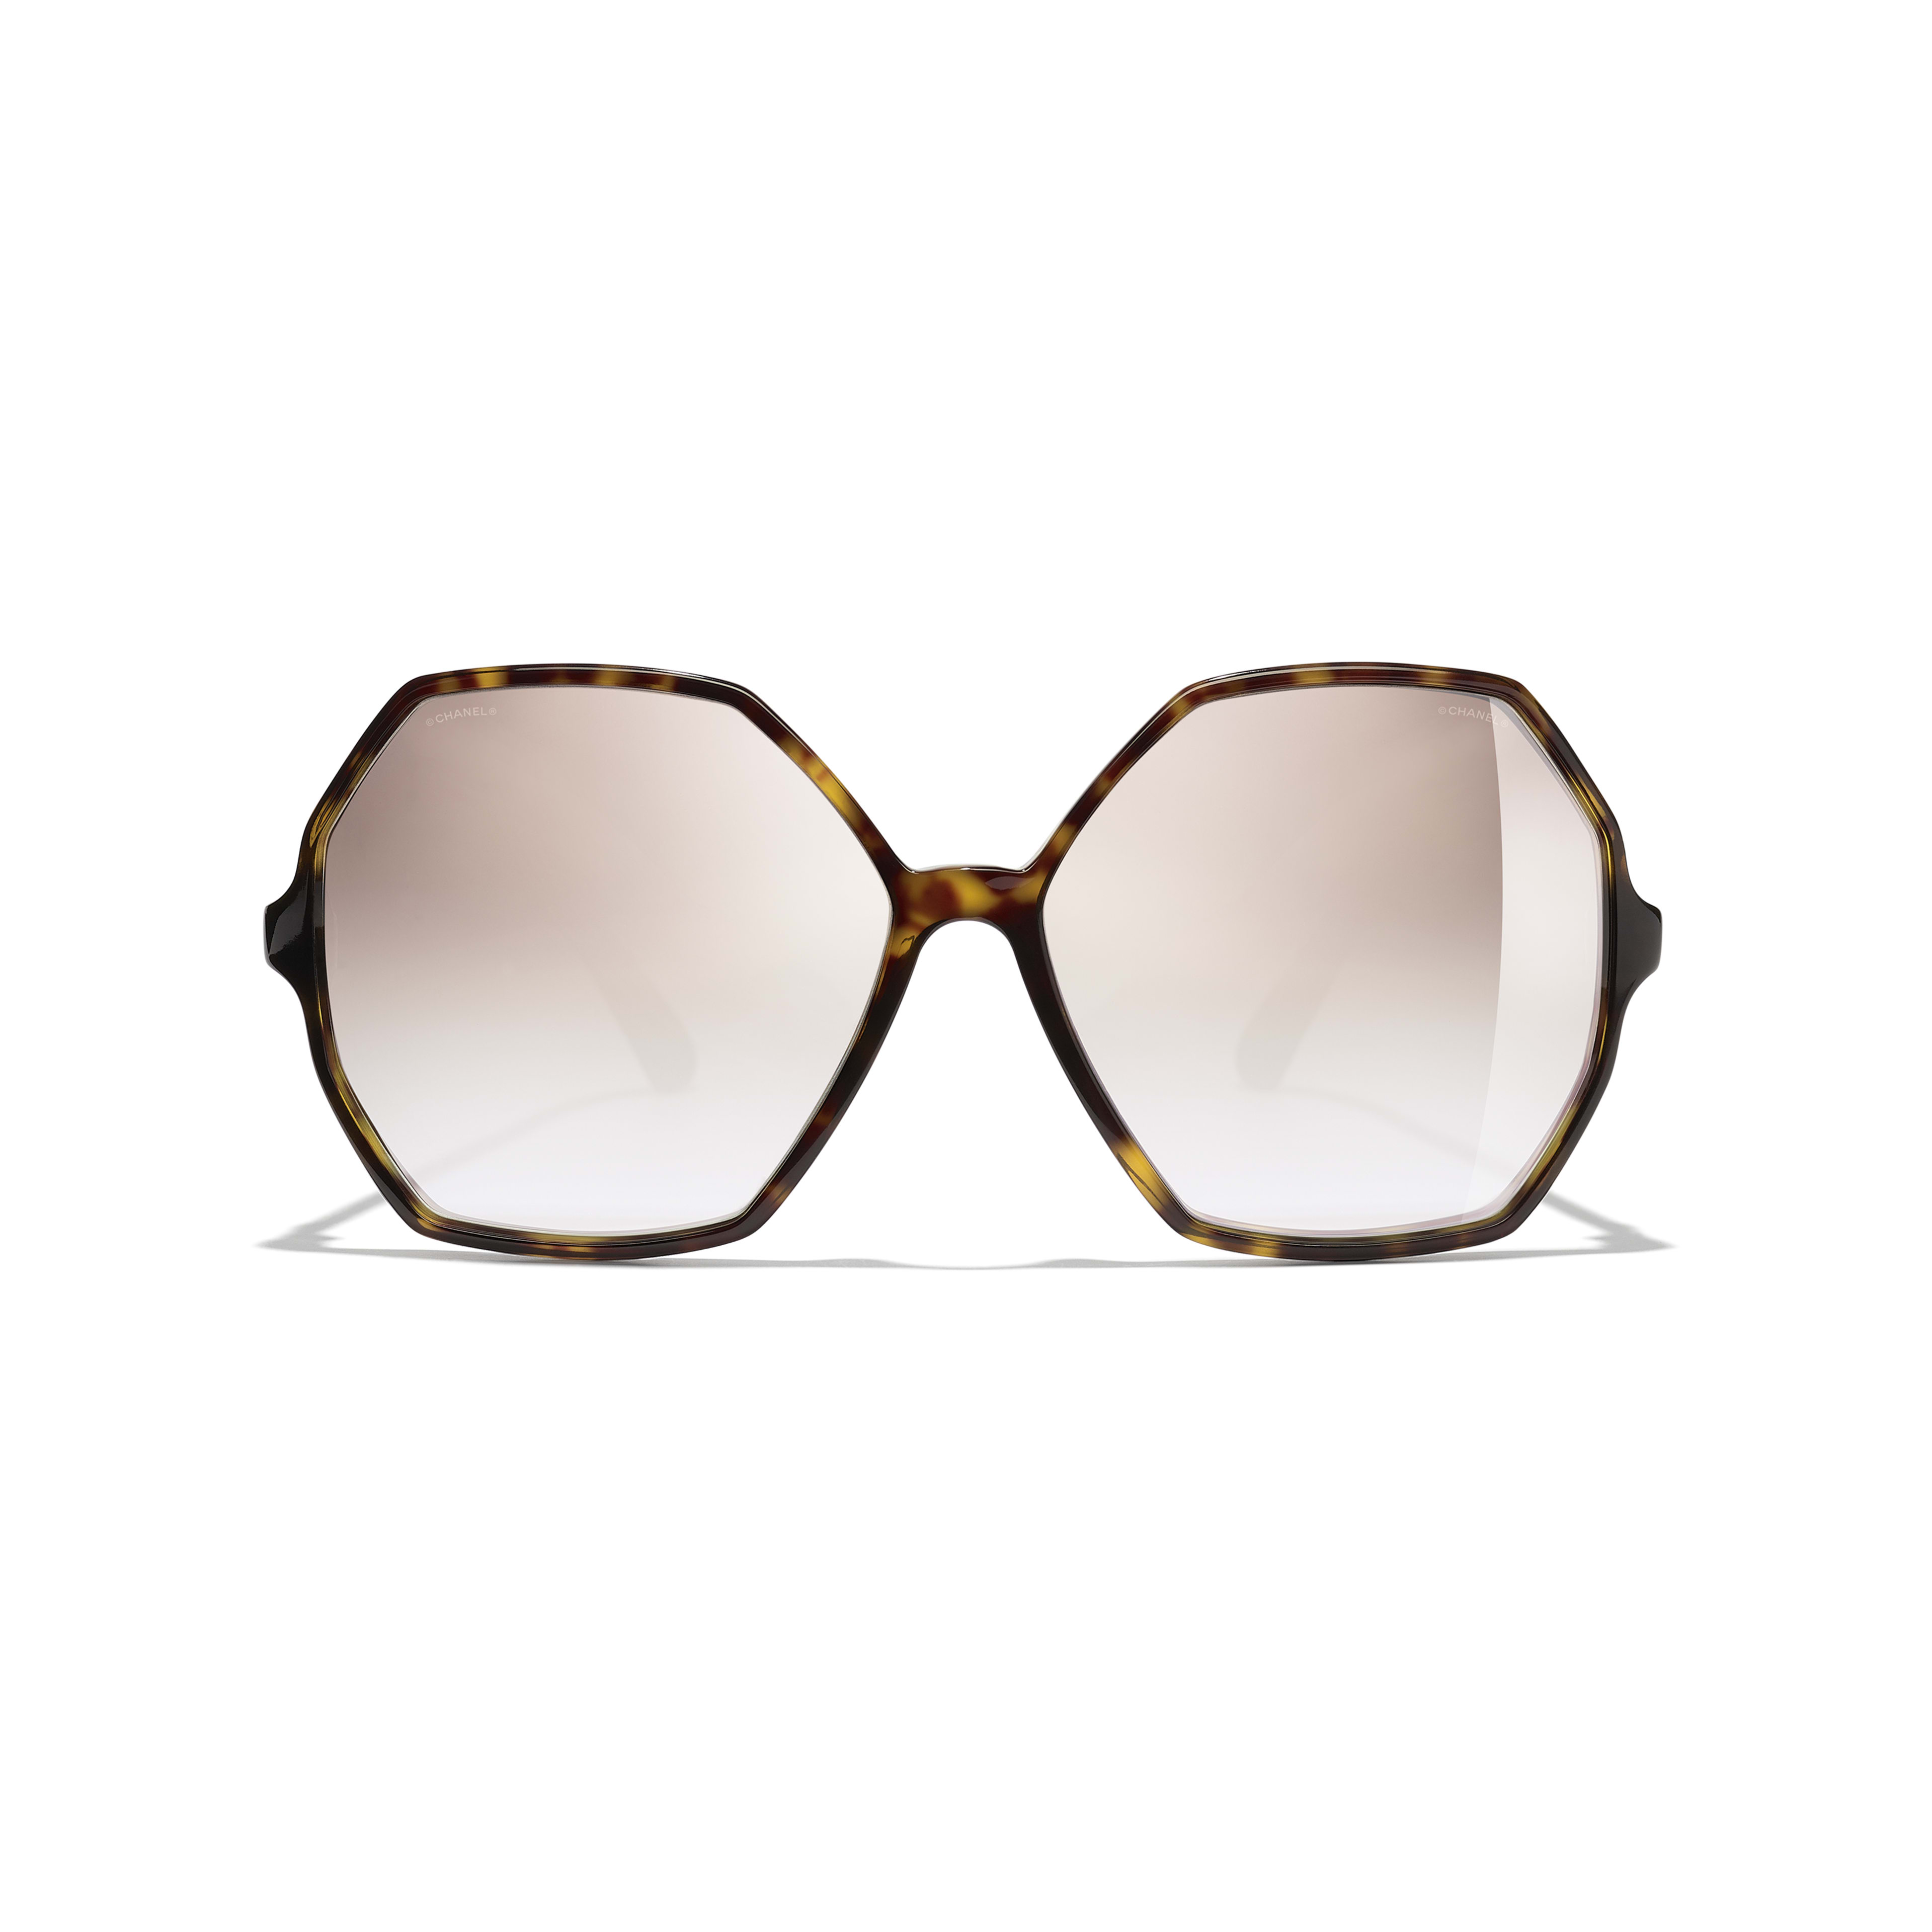 Round Sunglasses - Dark Tortoise - Acetate, Wood & Rubber - CHANEL - Alternative view - see standard sized version